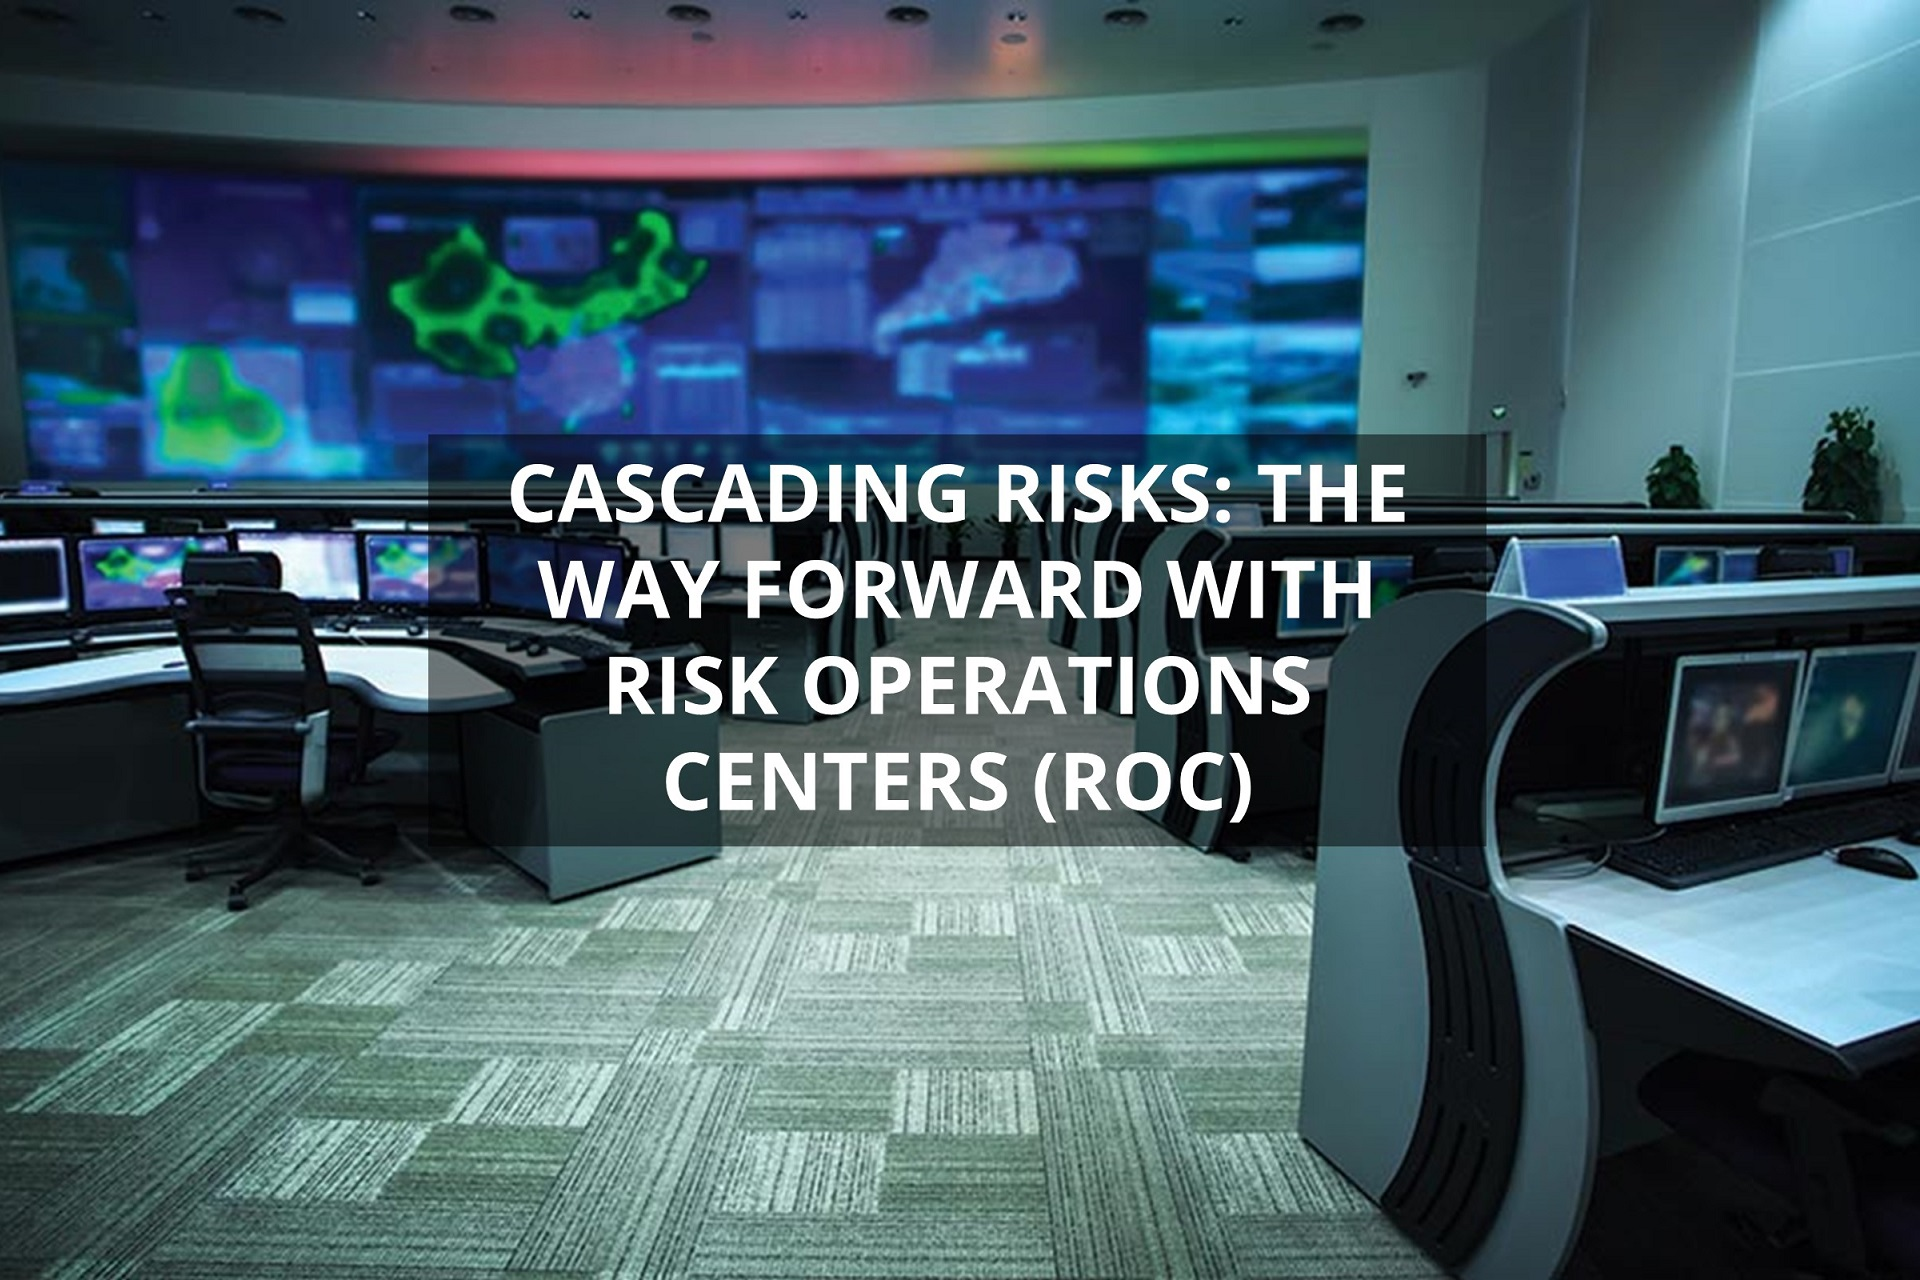 Prepare and respond to cascading risks with a ROC